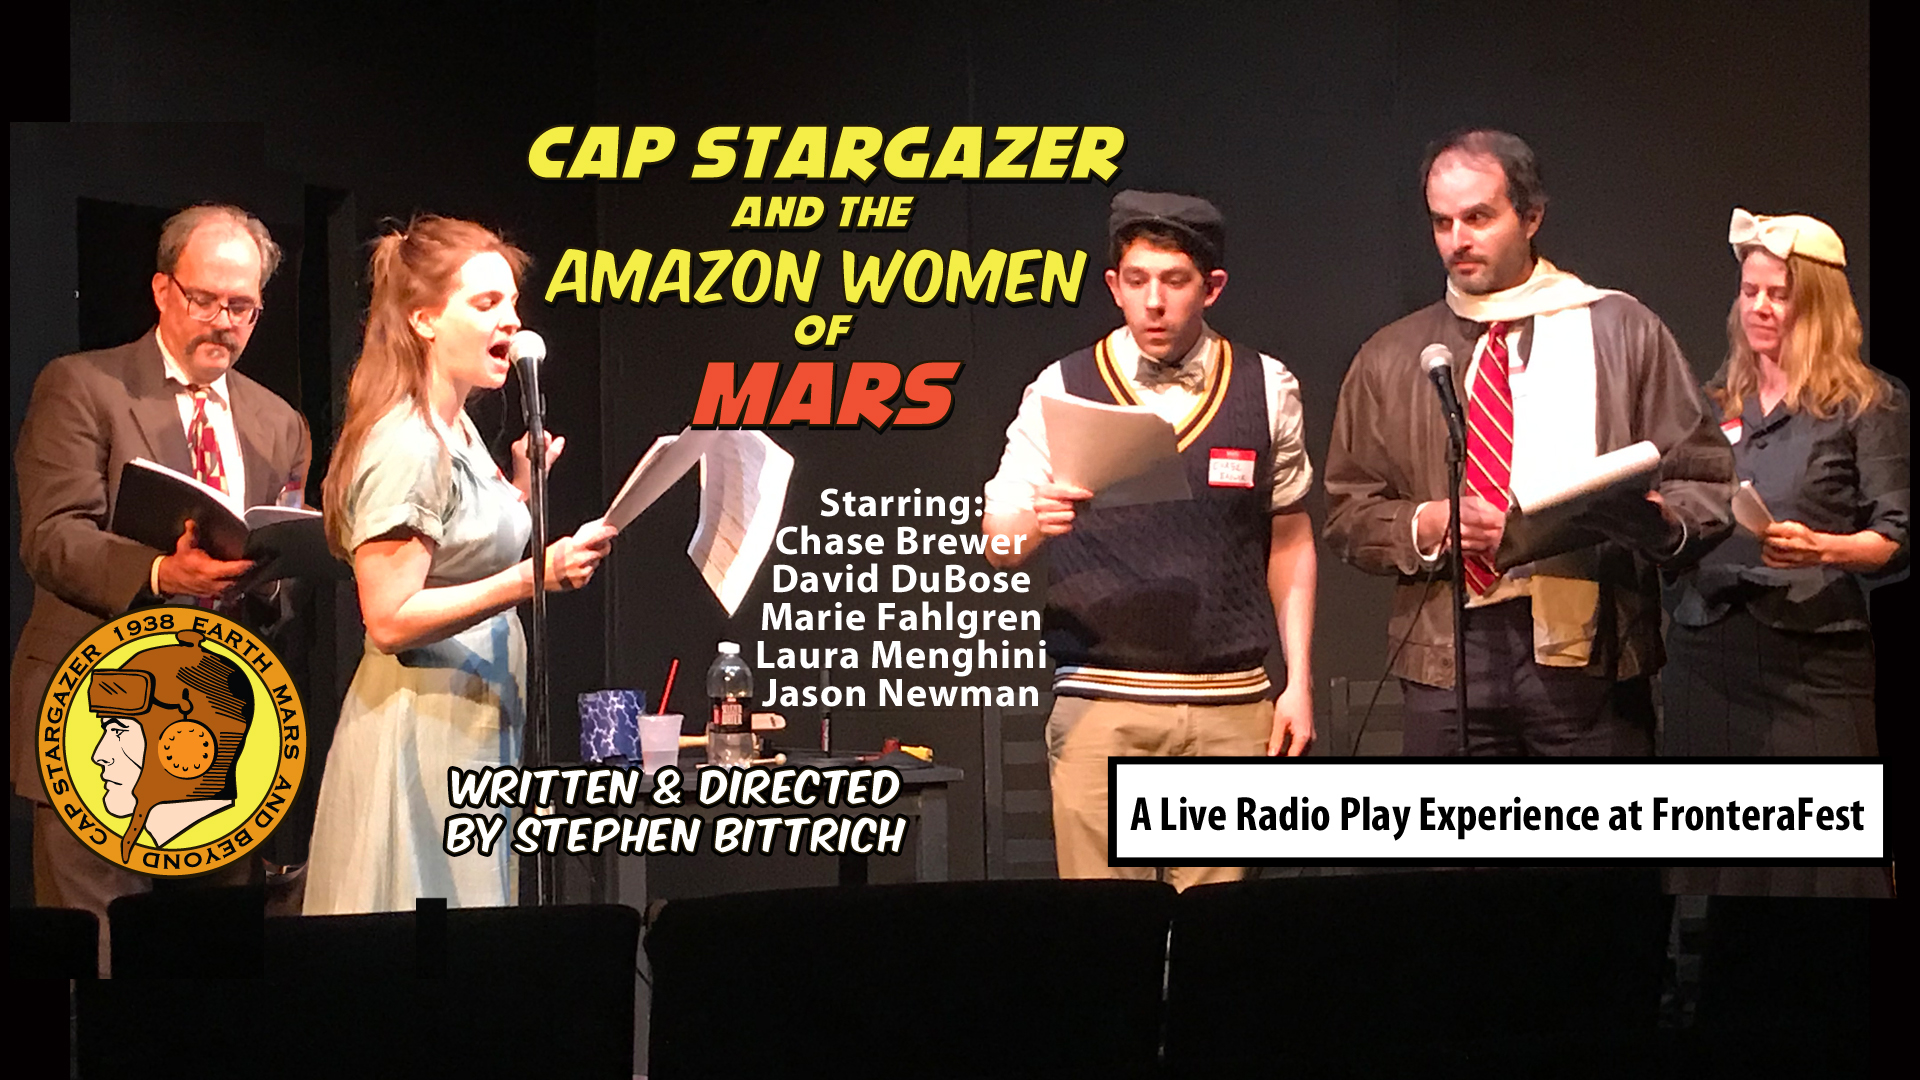 Cap Stargazer and the Amazon Women of Mars – Episode 1 – FronteraFest 2019